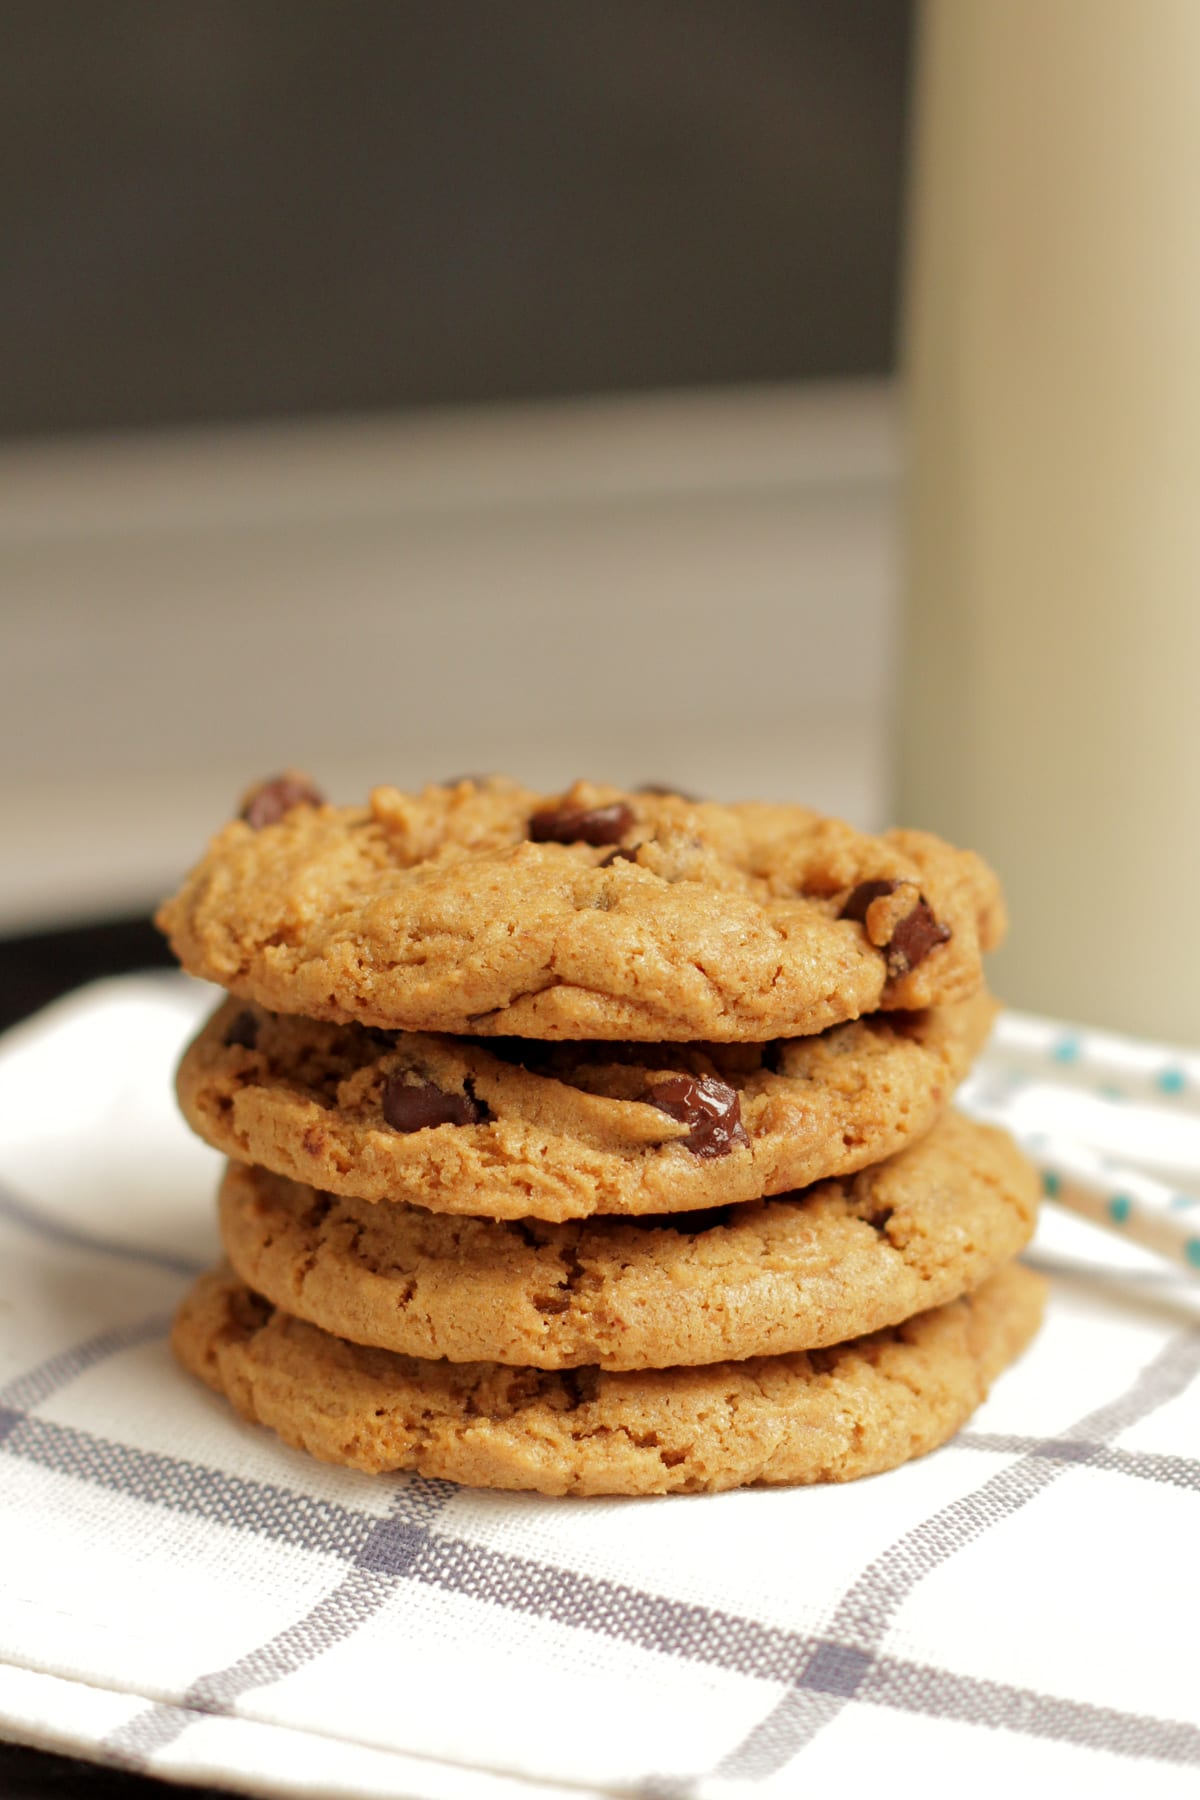 Soaked Chewy Whole Wheat Chocolate Chip Cookies - Live Simply